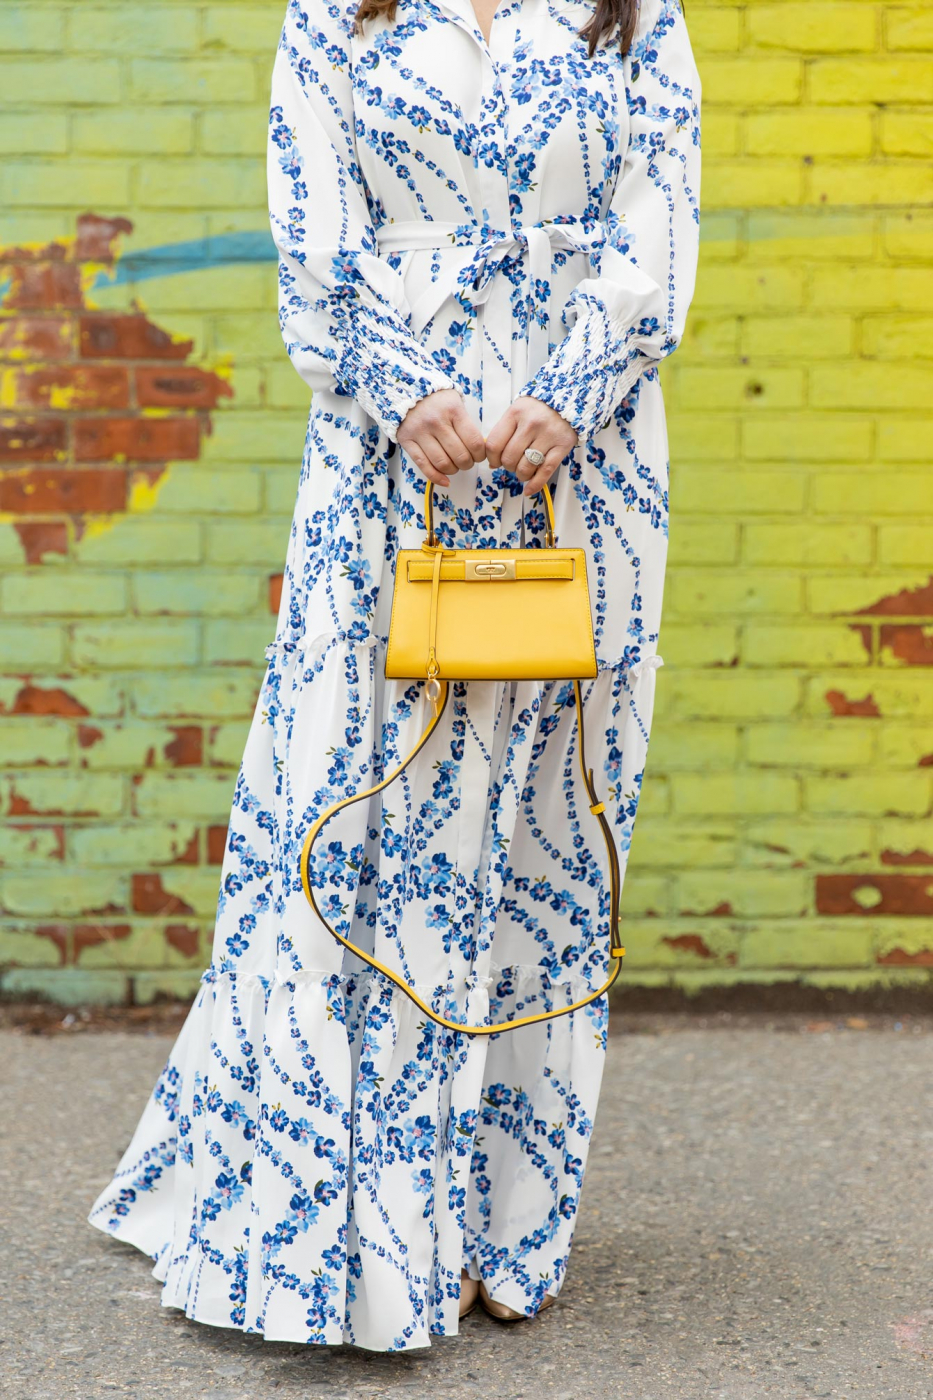 Tory Burch Yellow Lee Radziwill Bag